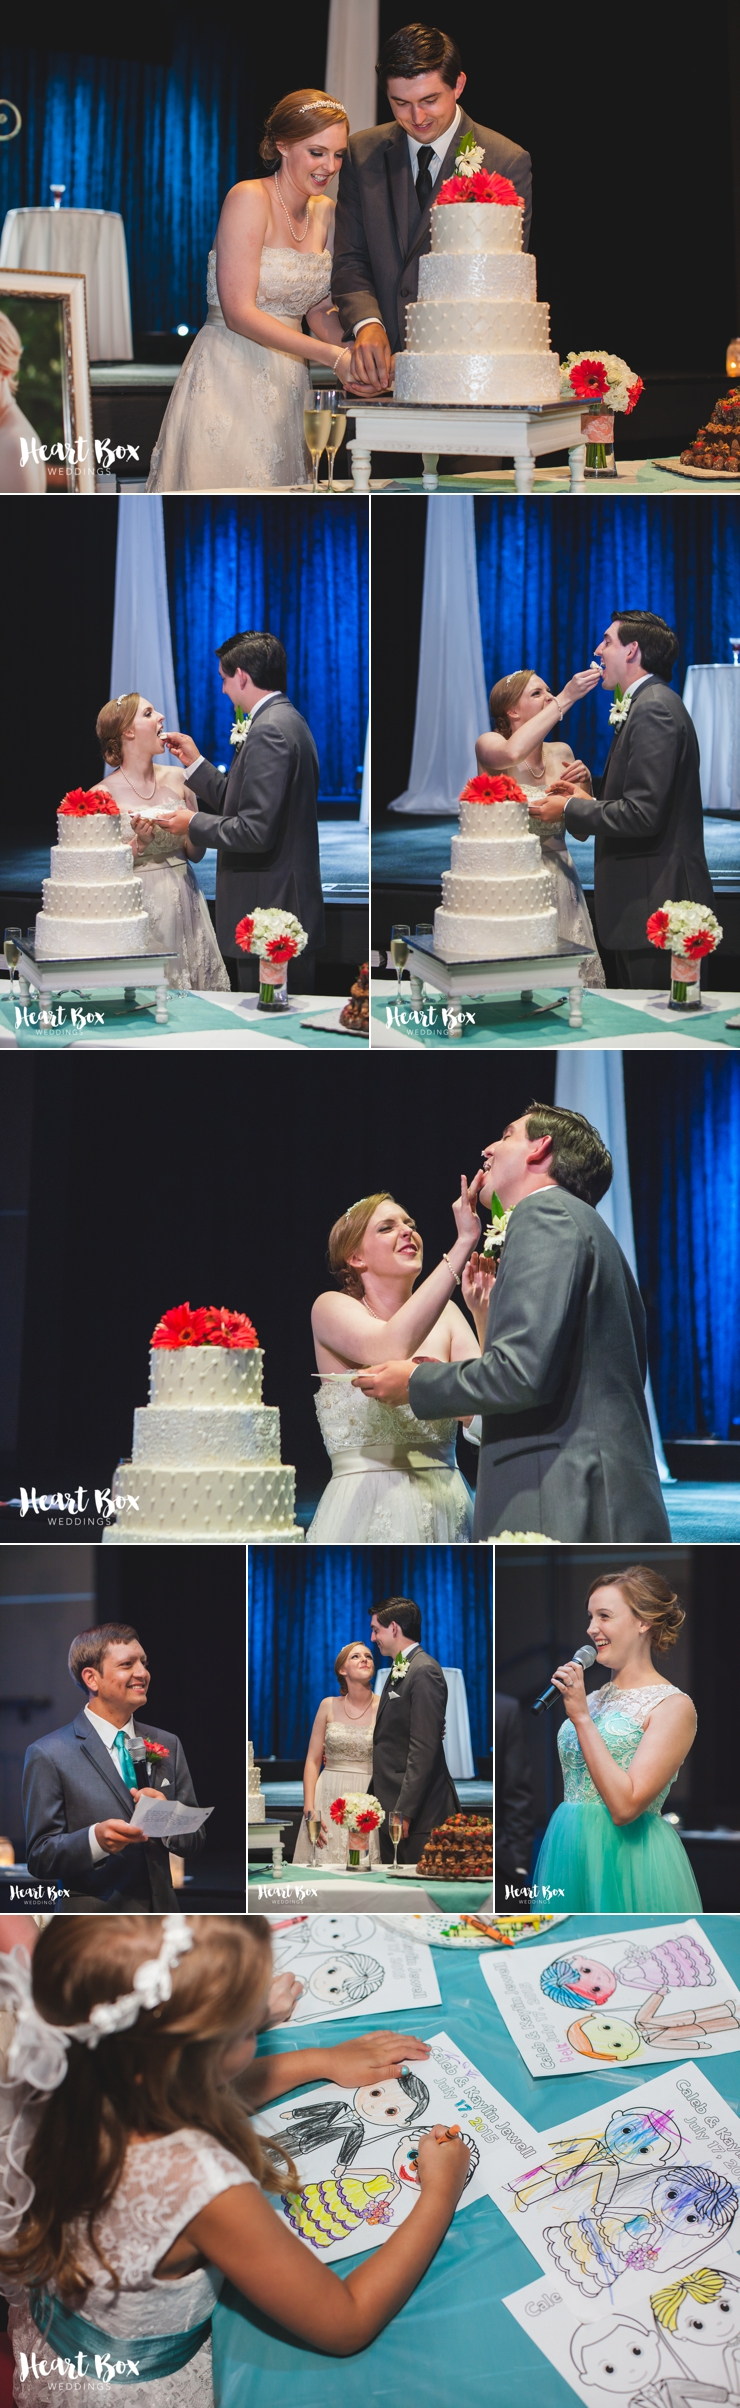 Jewell Wedding Blog Collages 16.jpg